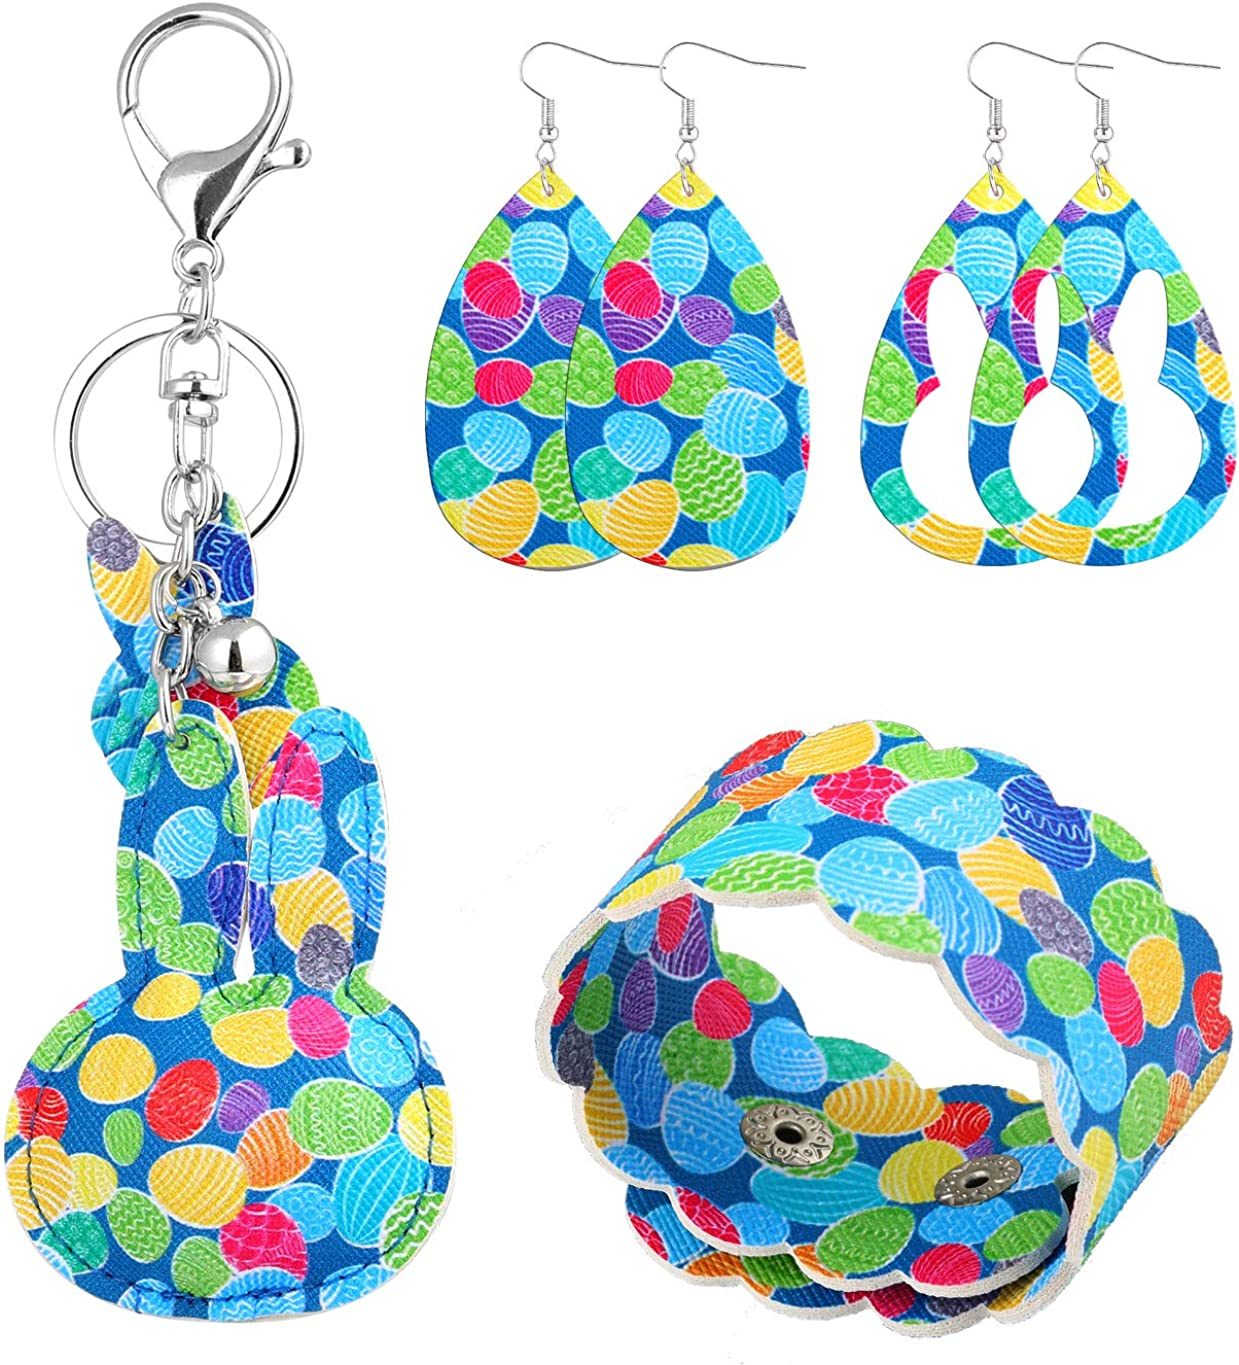 Easter Faux Leather Earrings for Women Lightweight Leather Bangle Bracelet Rabbit Bunny Print Pendant Keychain Easter Party Holiday Jewelry set